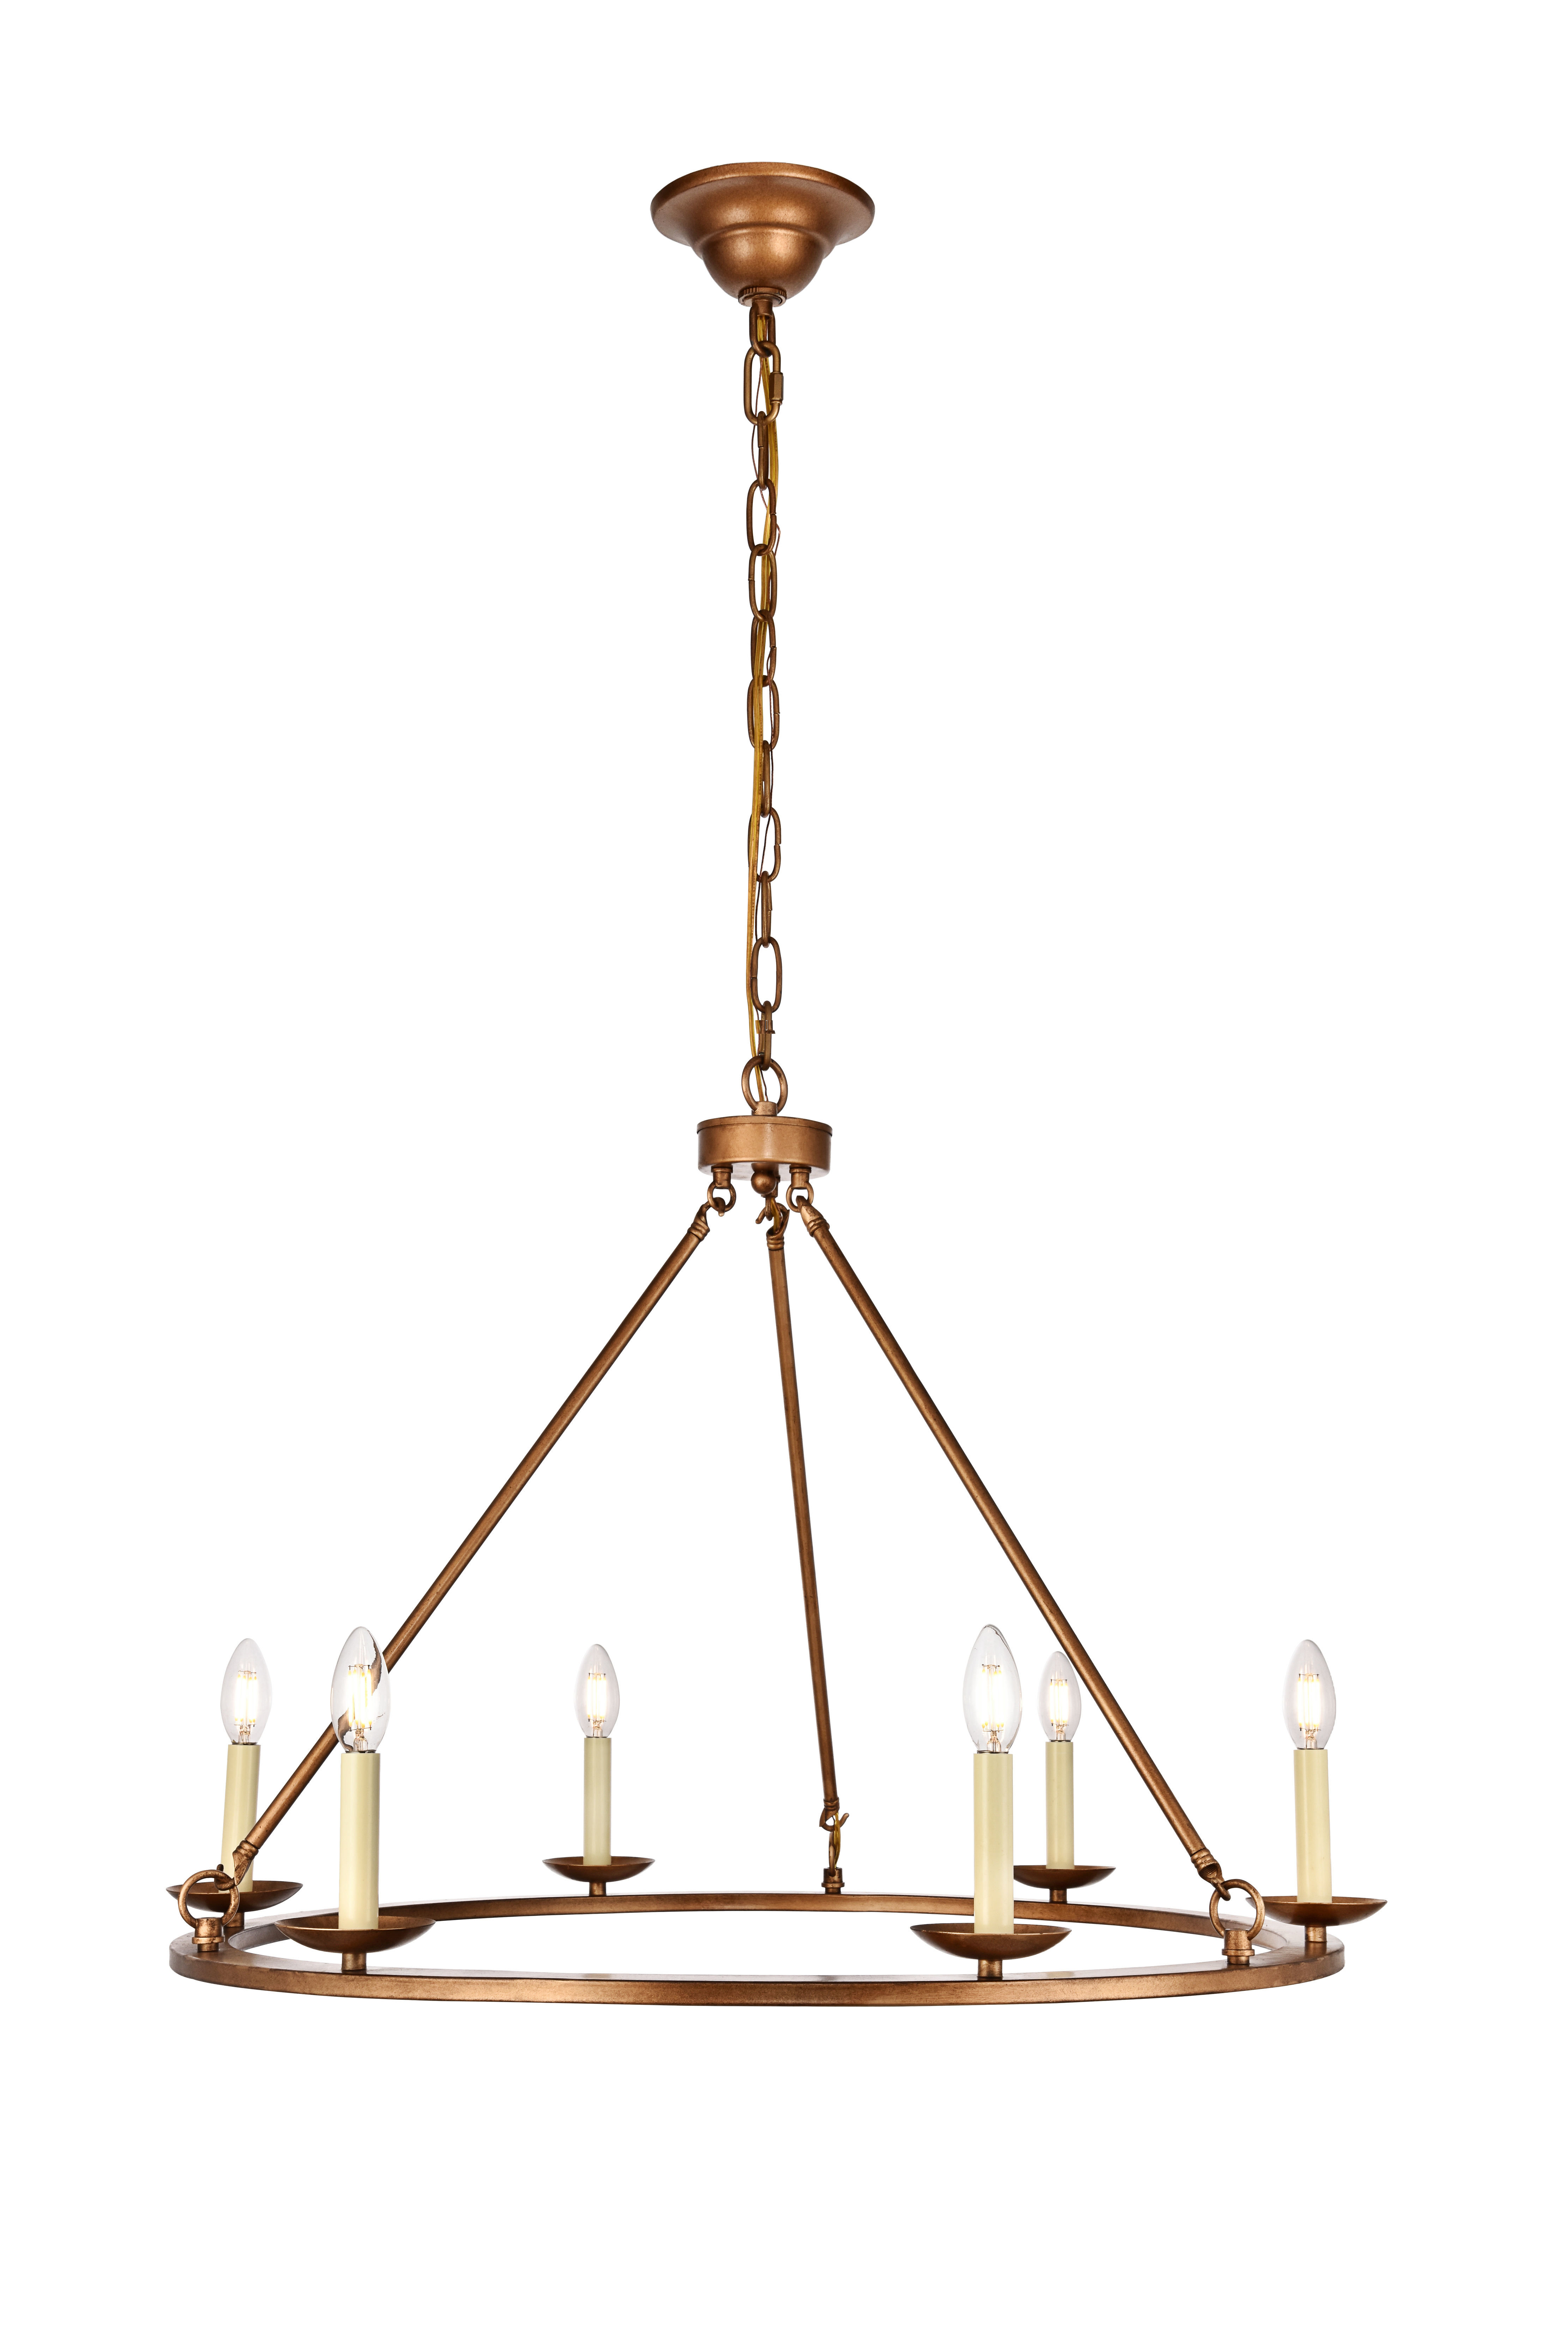 Most Current Pickensville 6 Light Wagon Wheel Chandelier Regarding Pickensville 6 Light Wagon Wheel Chandeliers (Gallery 4 of 20)